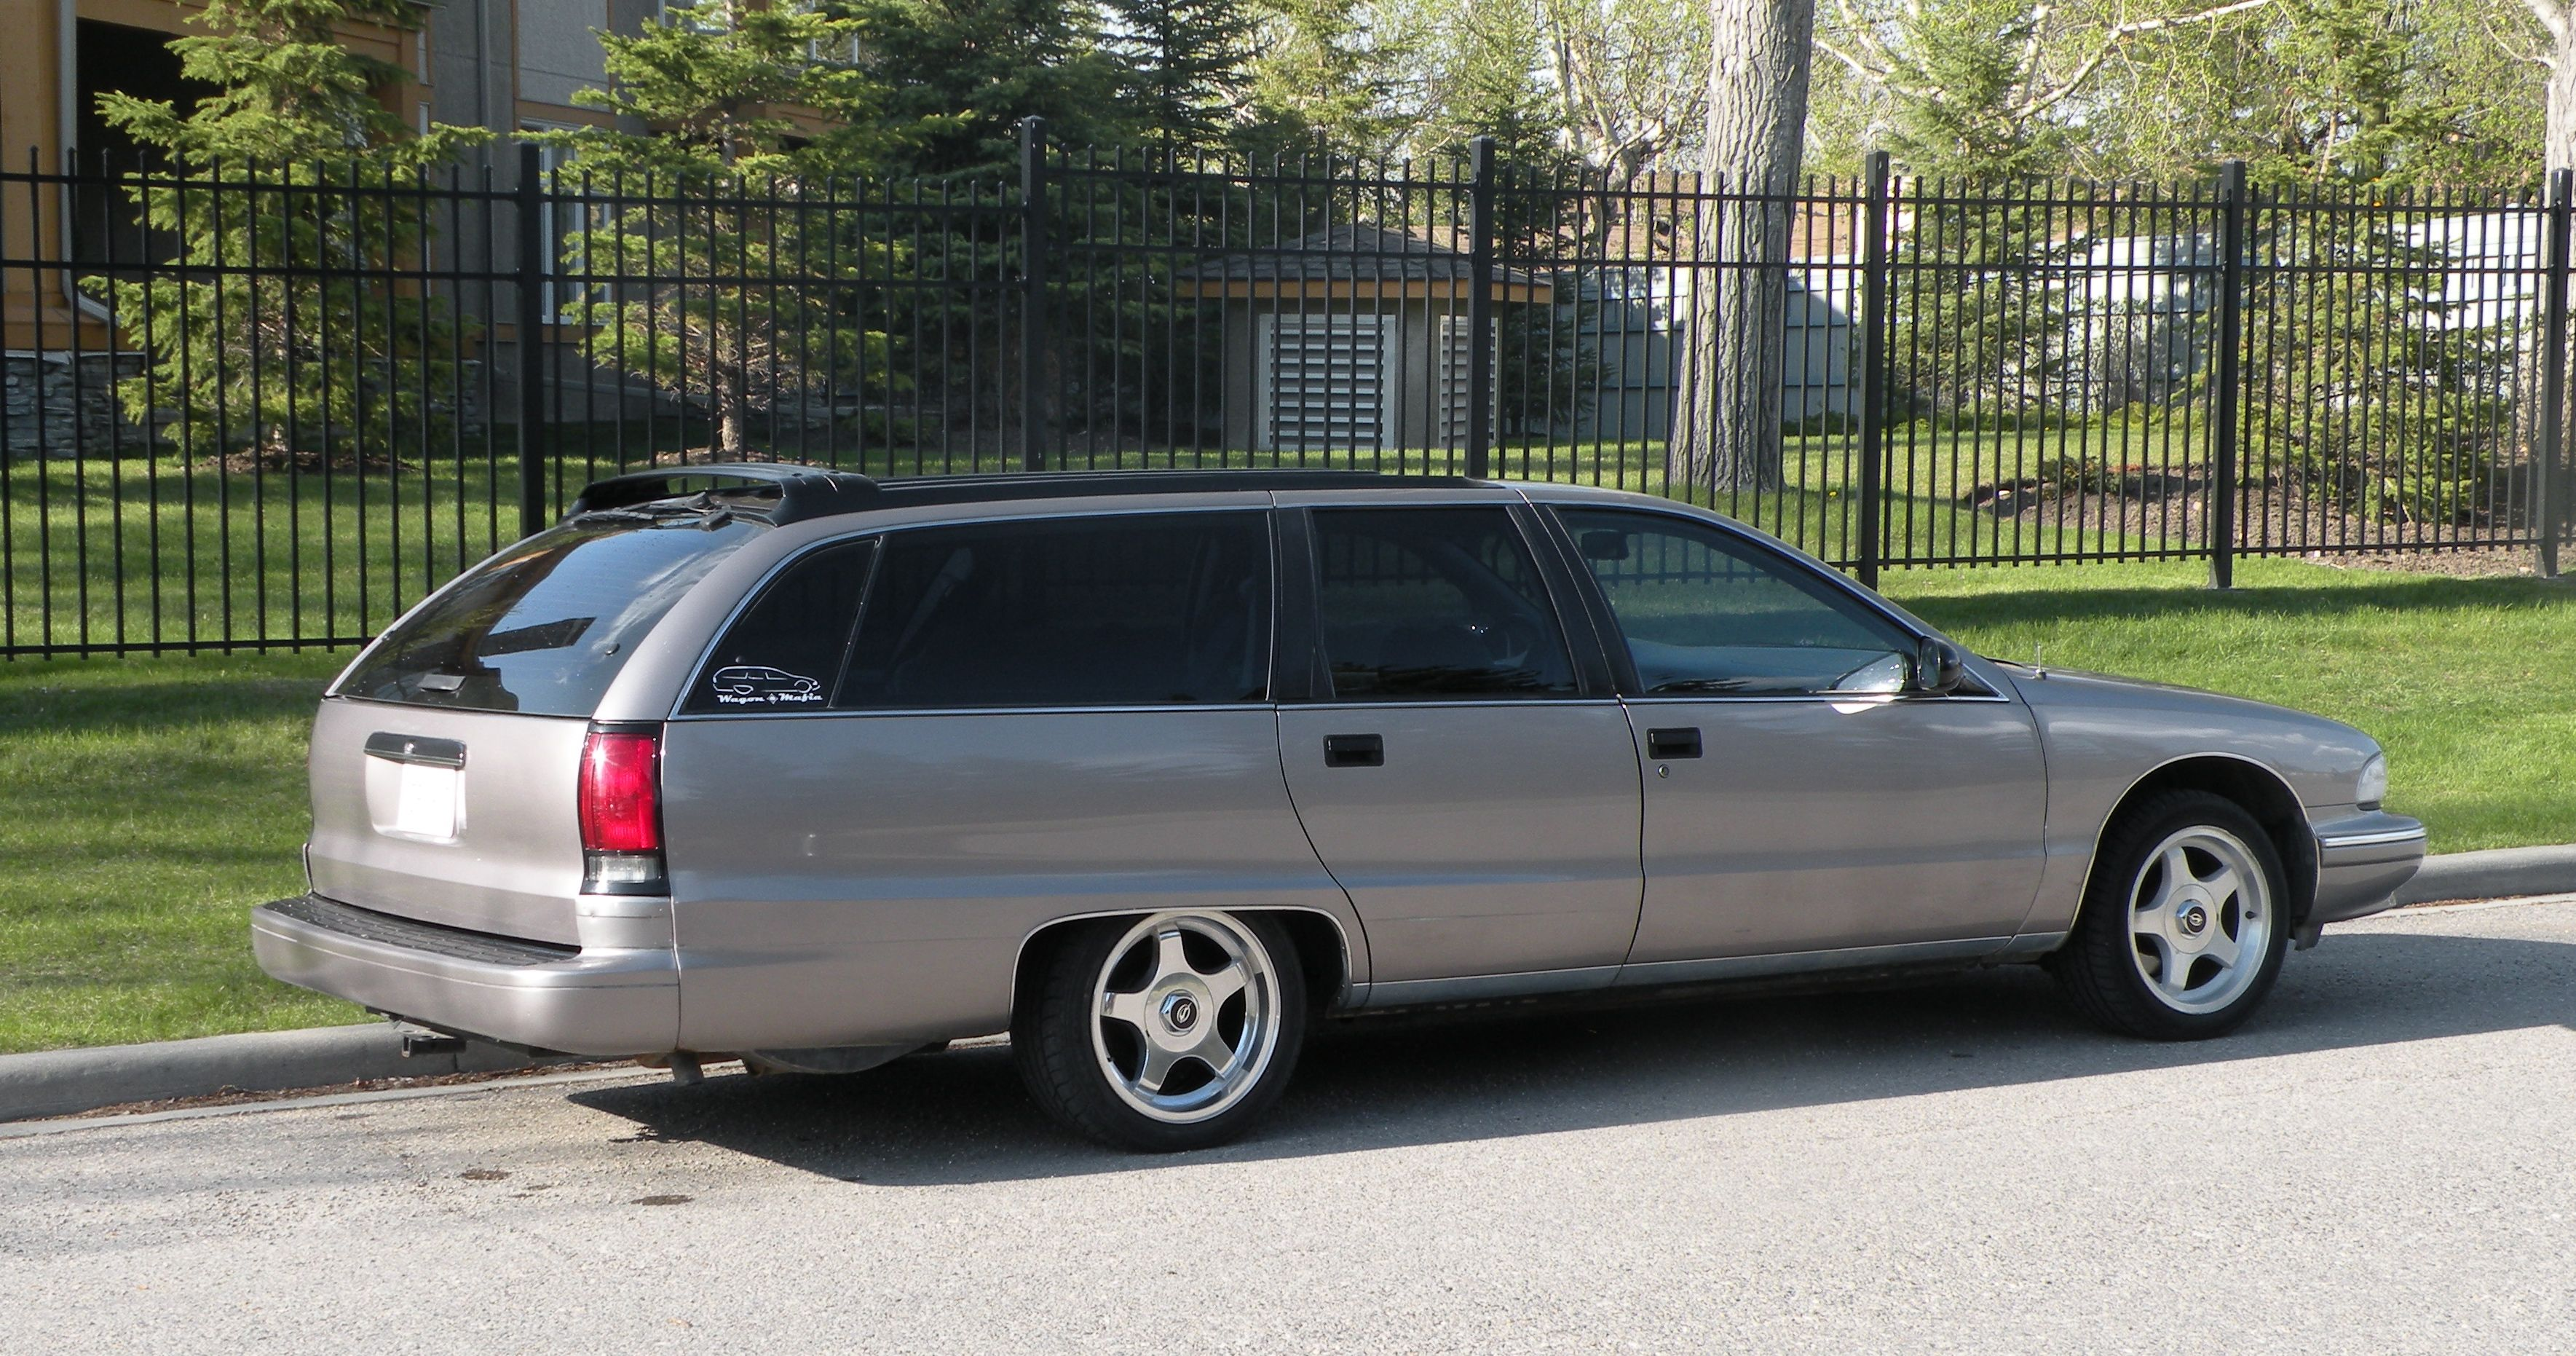 Pin On 91 94 Chevy Caprice Wagons